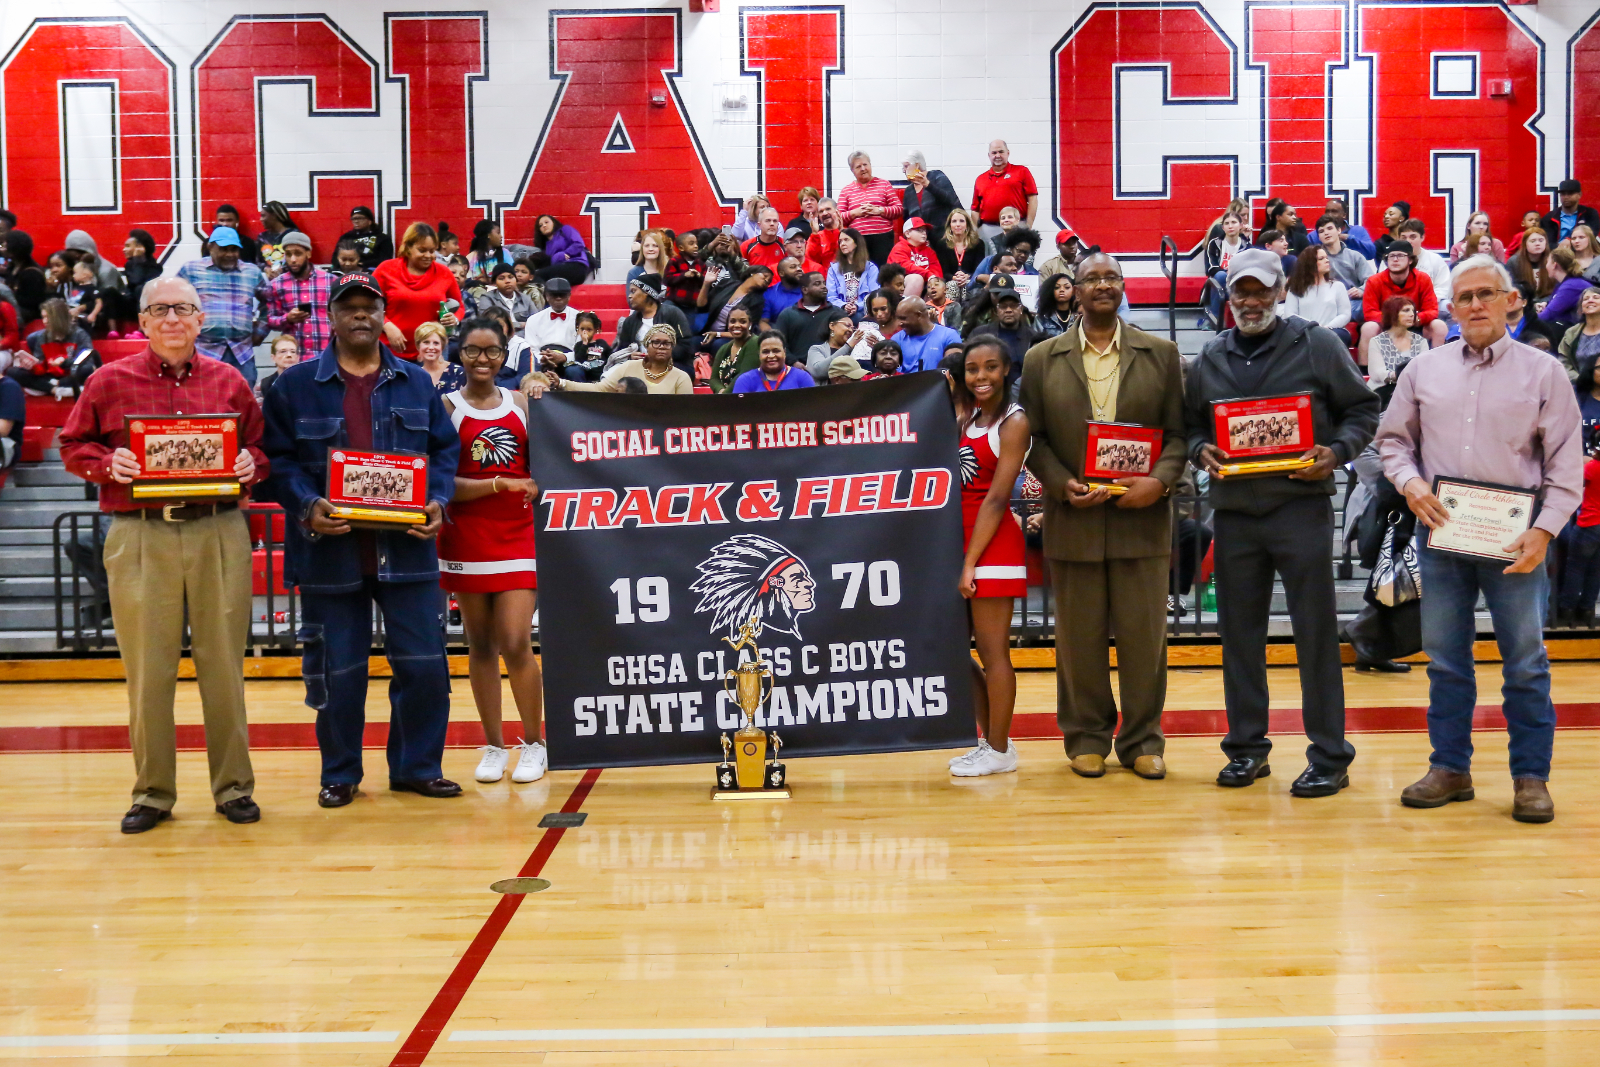 1970 State Champion Track Team Honored